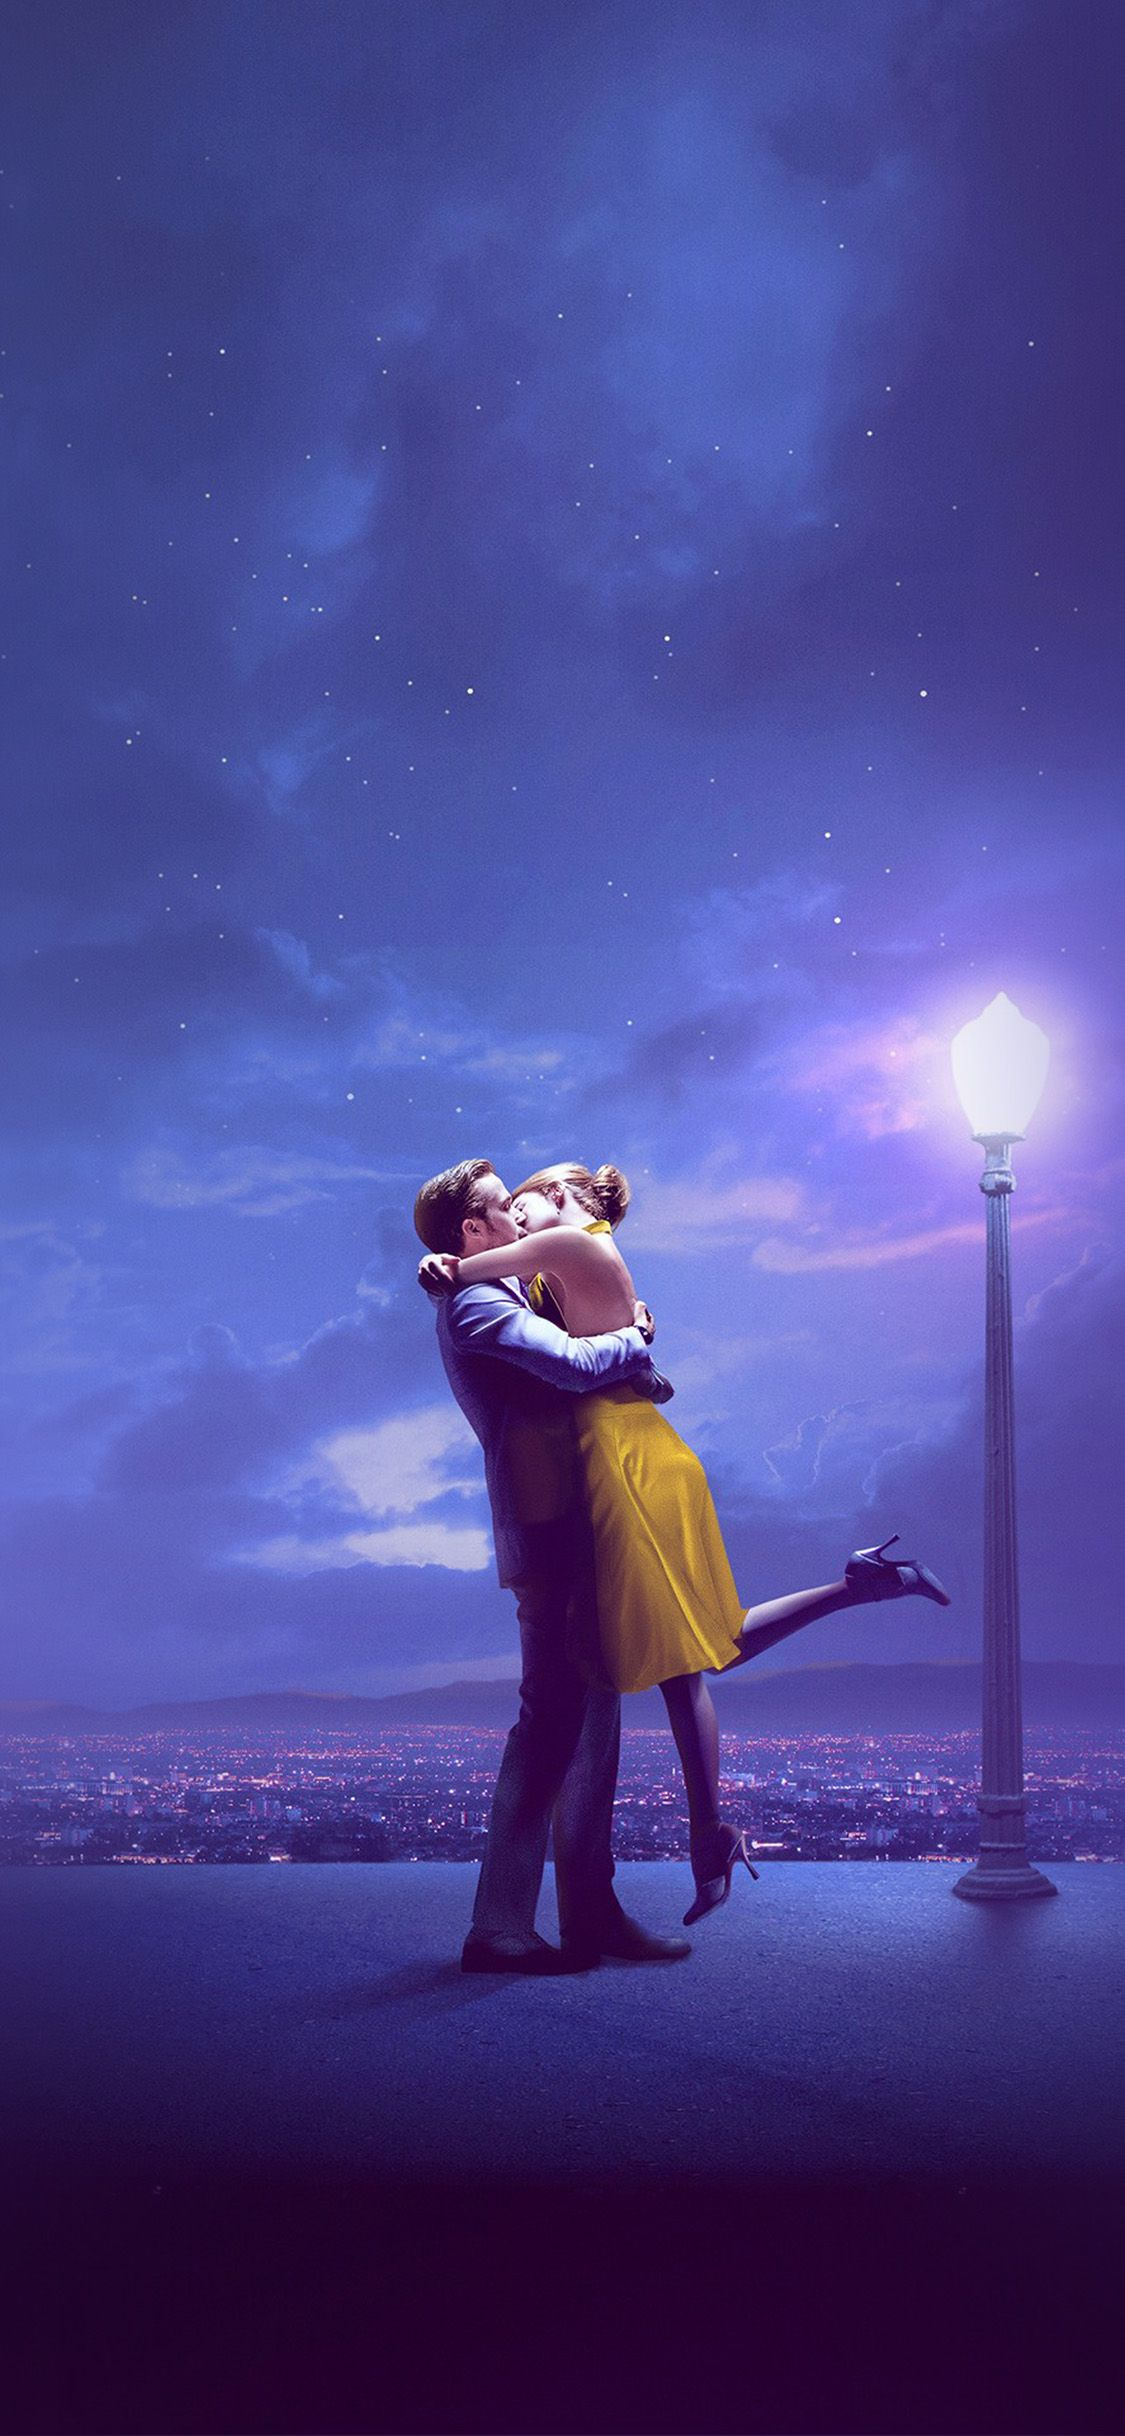 Bg30 Lalaland Film Kiss Blue Art Via Http Iphonexpapers Com Wallpapers For Iphone X La La Land Iphone Wallpaper Movie Movie Wallpapers